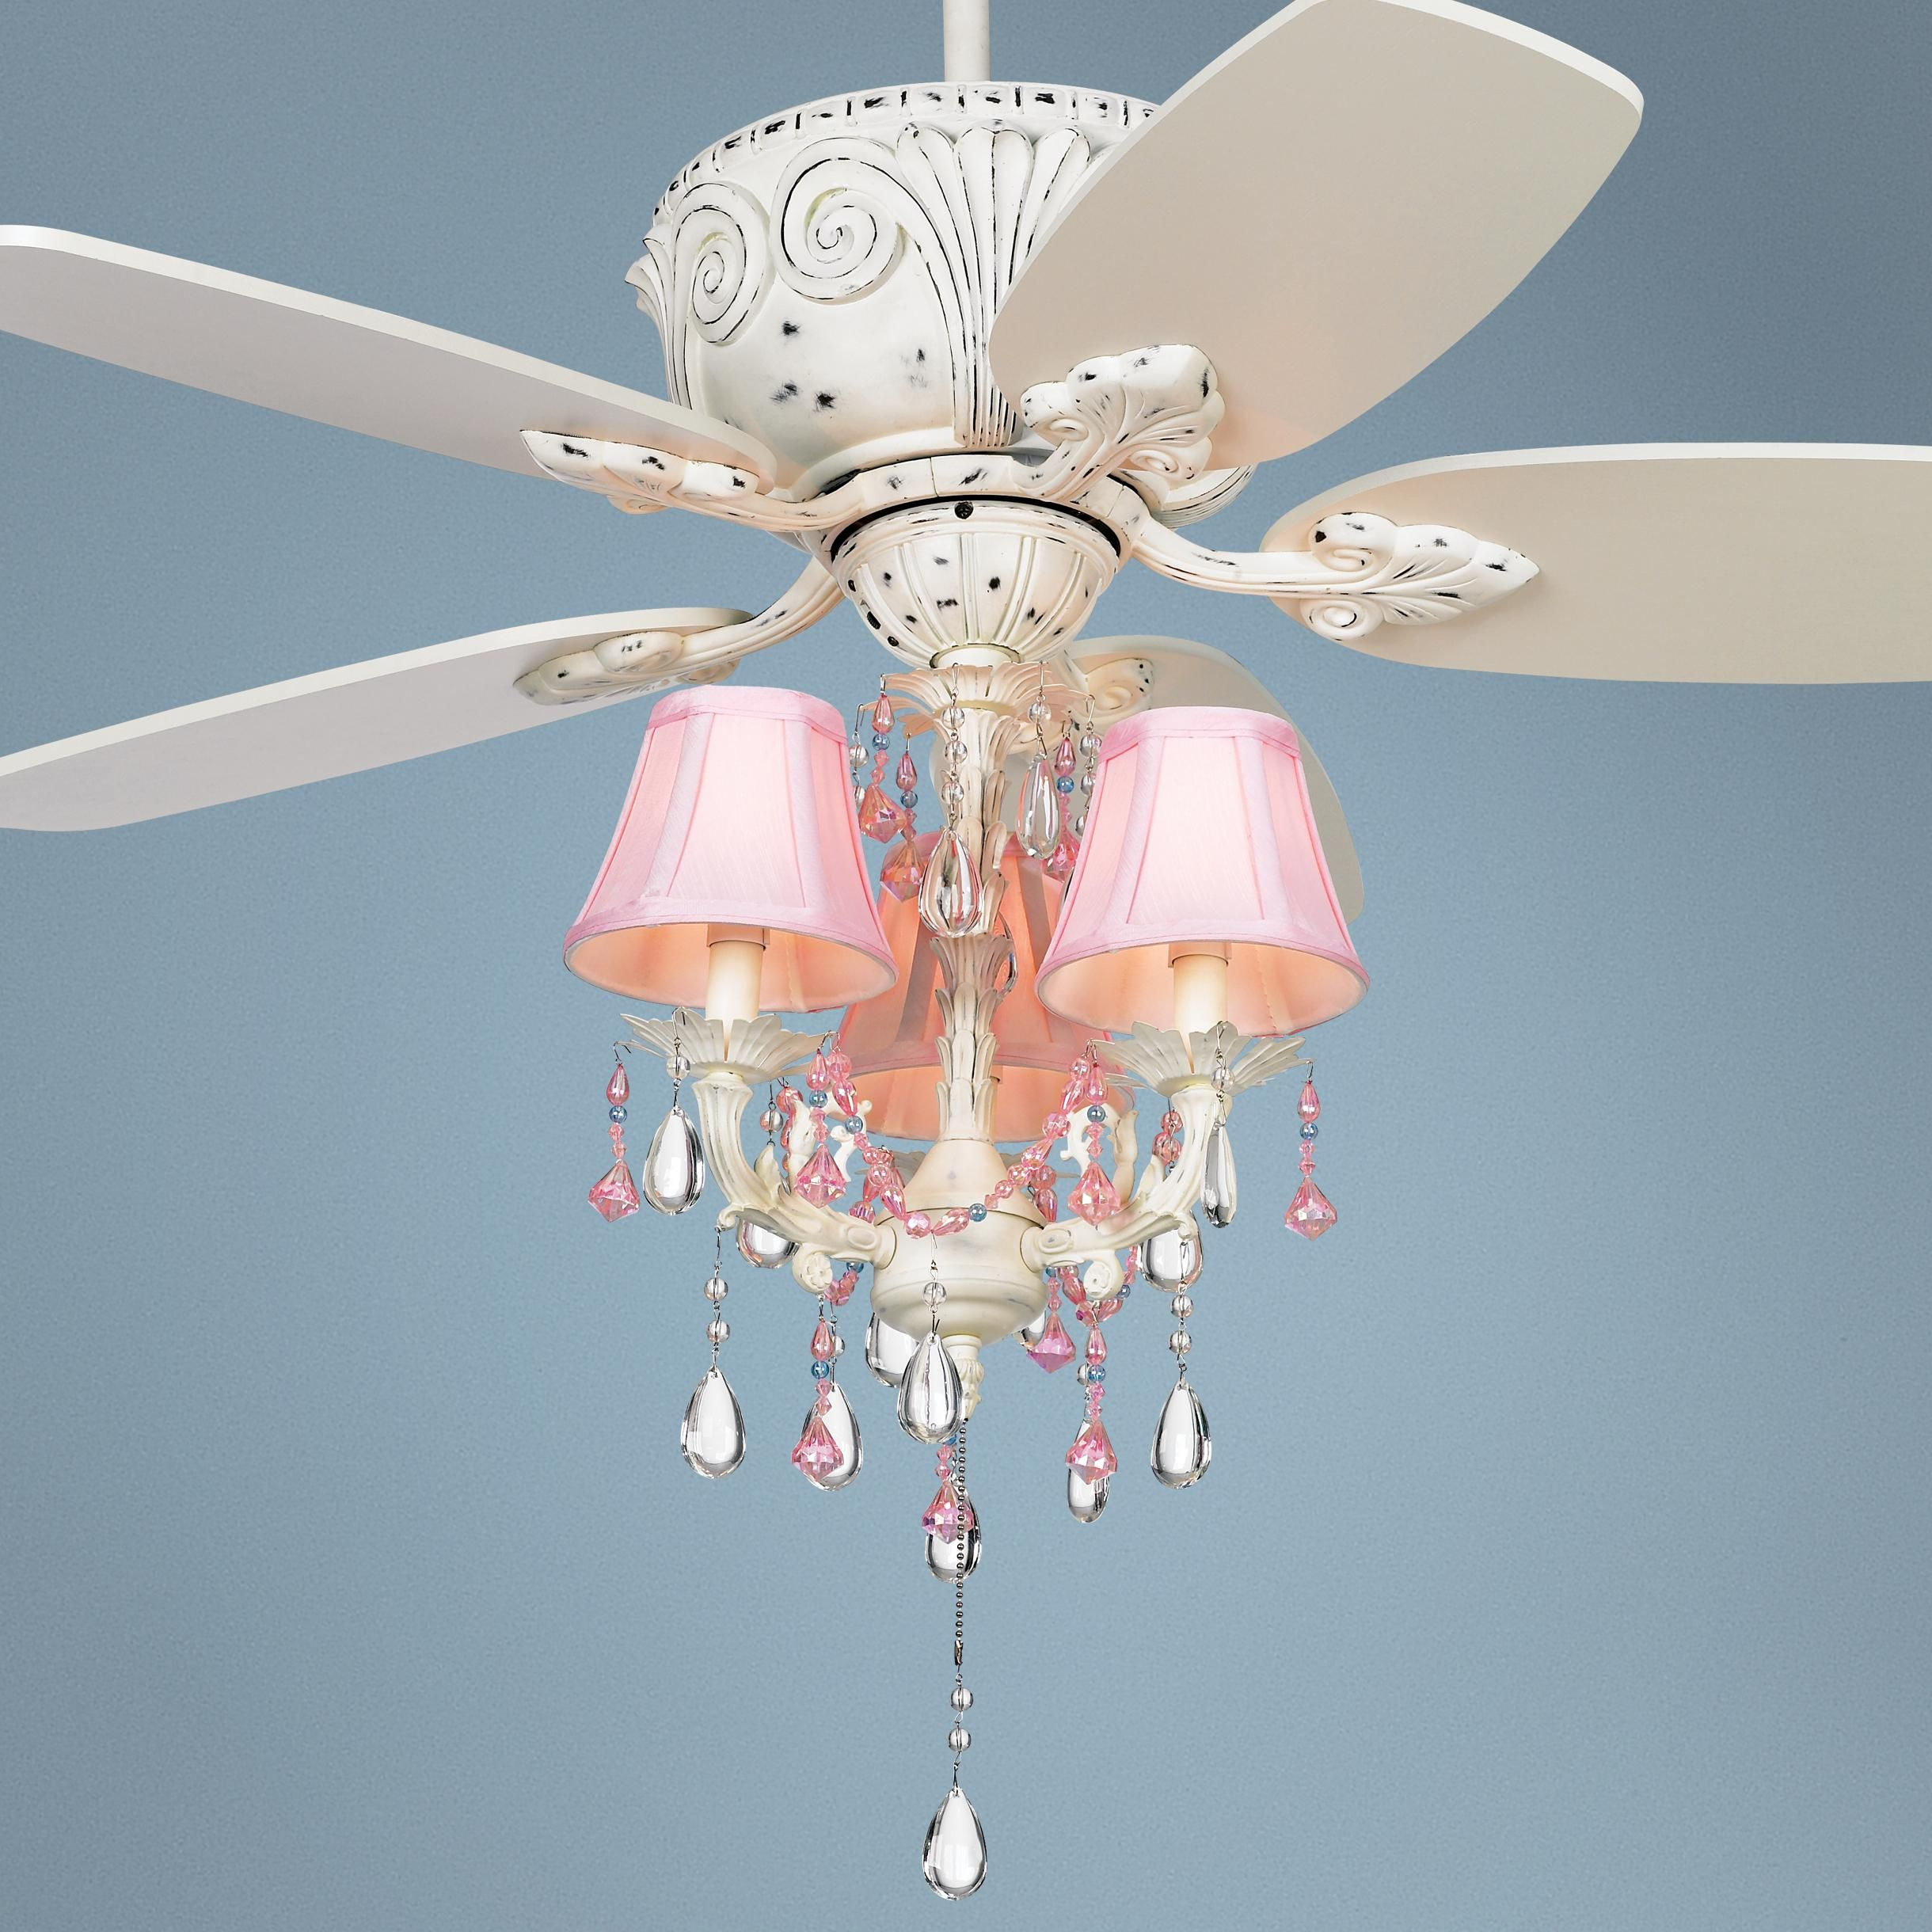 Pretty Ceiling Fans With Lights 44 Quot Casa Deville Pretty In Pink Pull Chain Ceiling Fan